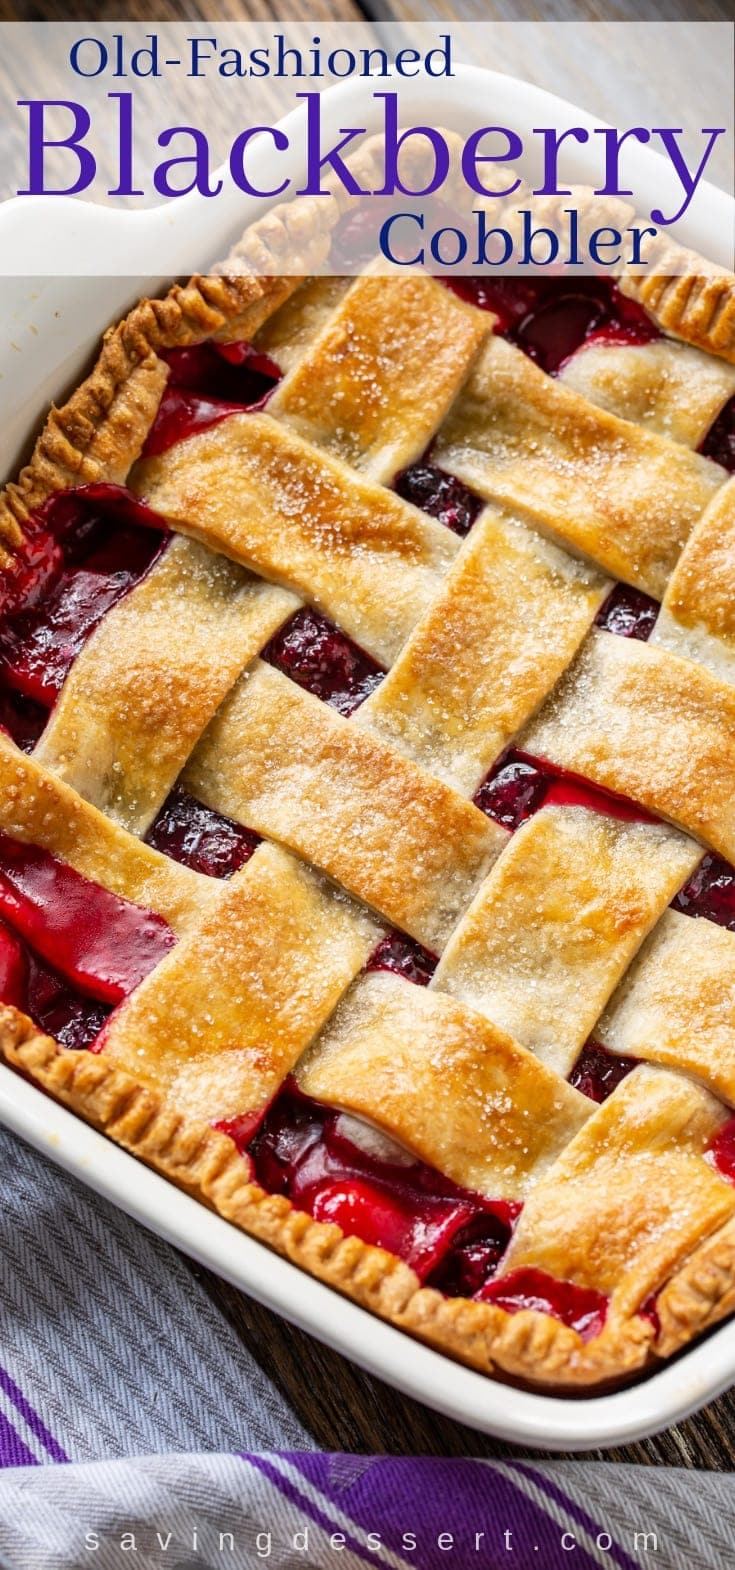 Blackberry cobbler with a lattice pastry crust